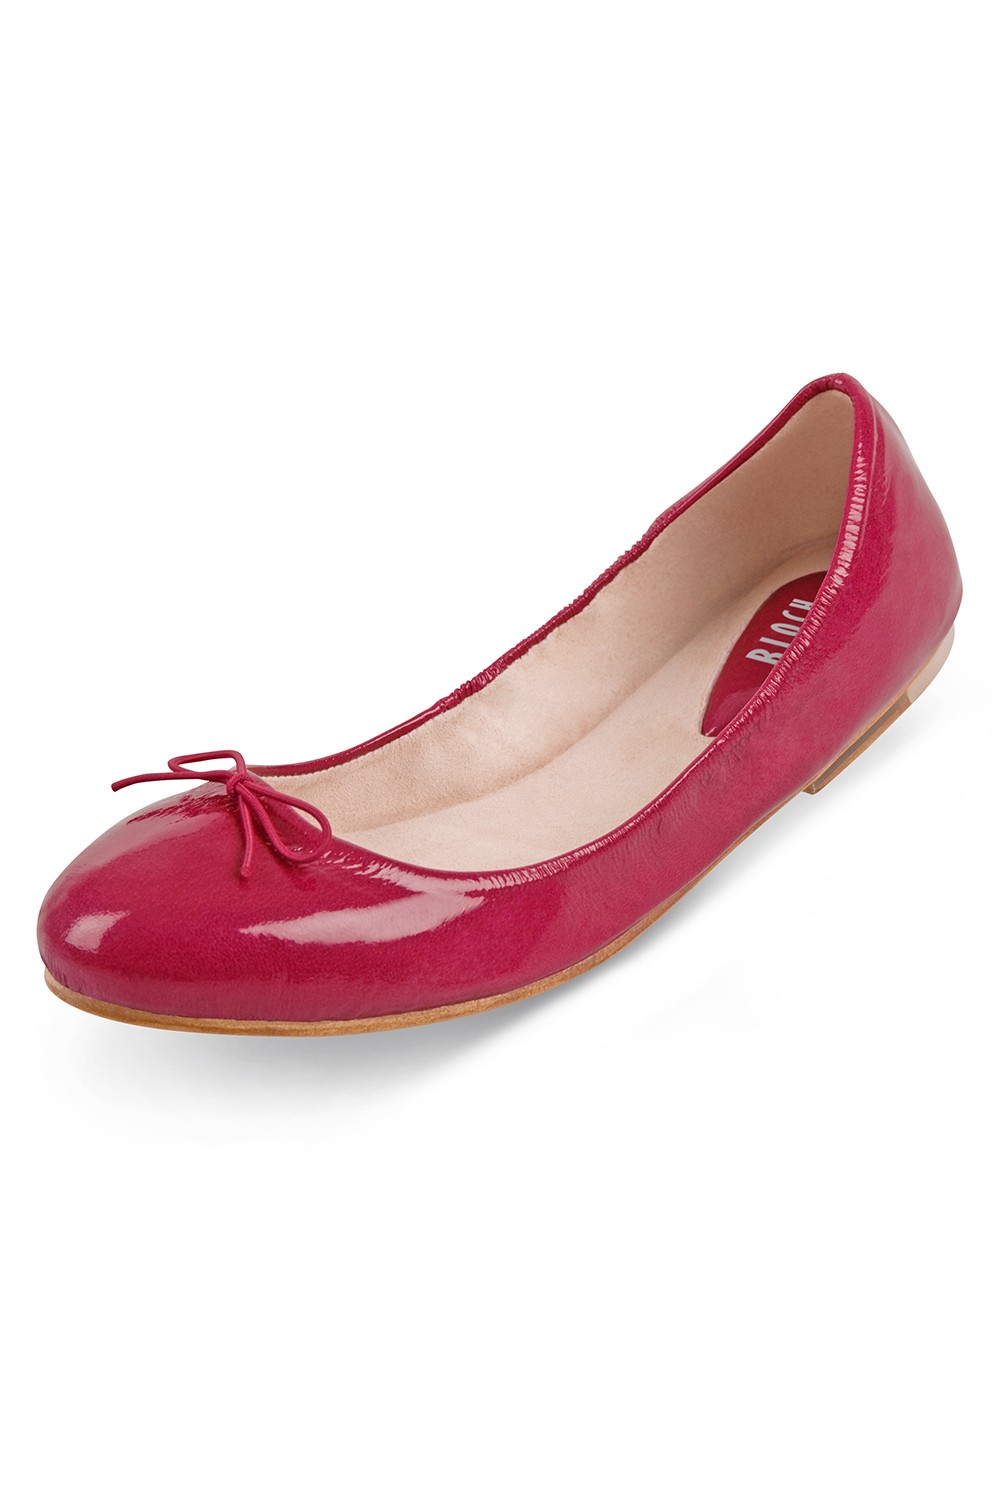 Ladies Ballet Flats Womens Fashion Shoes